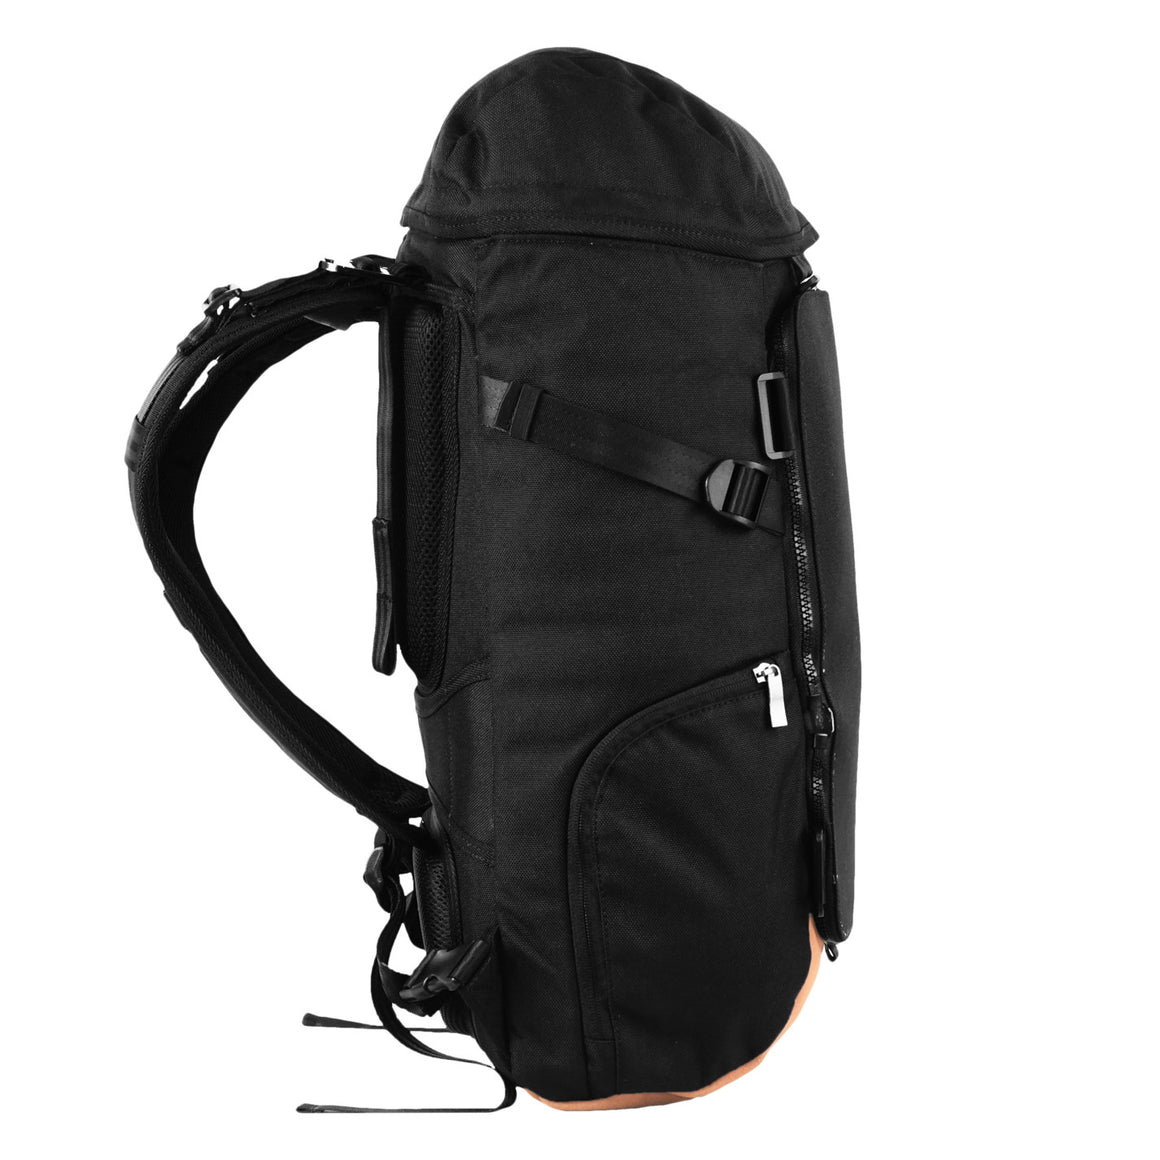 Oxdin Venix Cap-Top Plain Backpack XD-105-4-A-EEXX